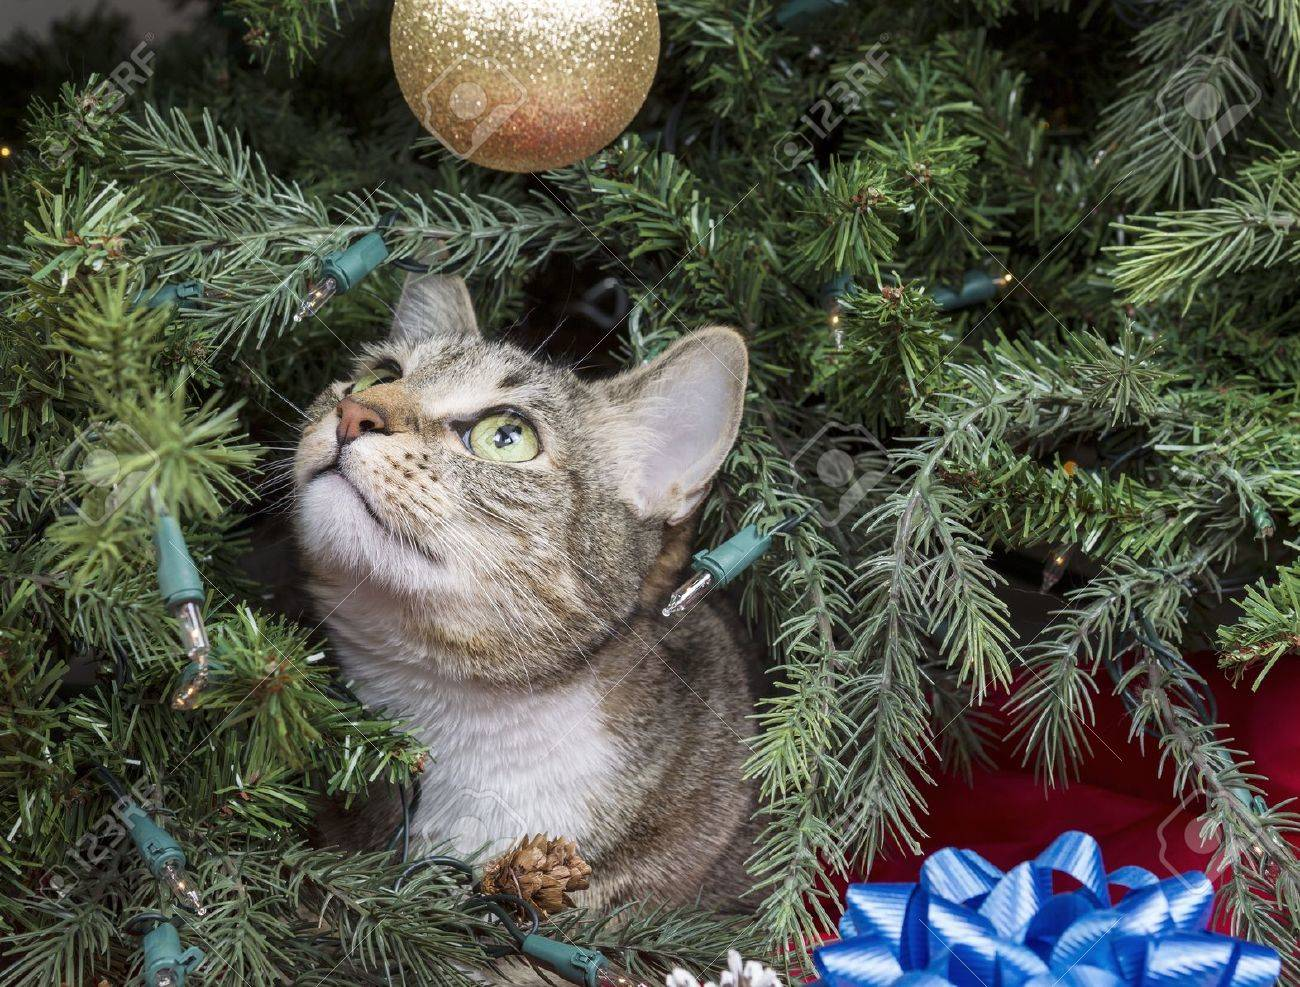 Tabby cat ornament - Gray Tabby Cat Starring At Golden Ornament While Inside Of Christmas Tree Stock Photo 16892803